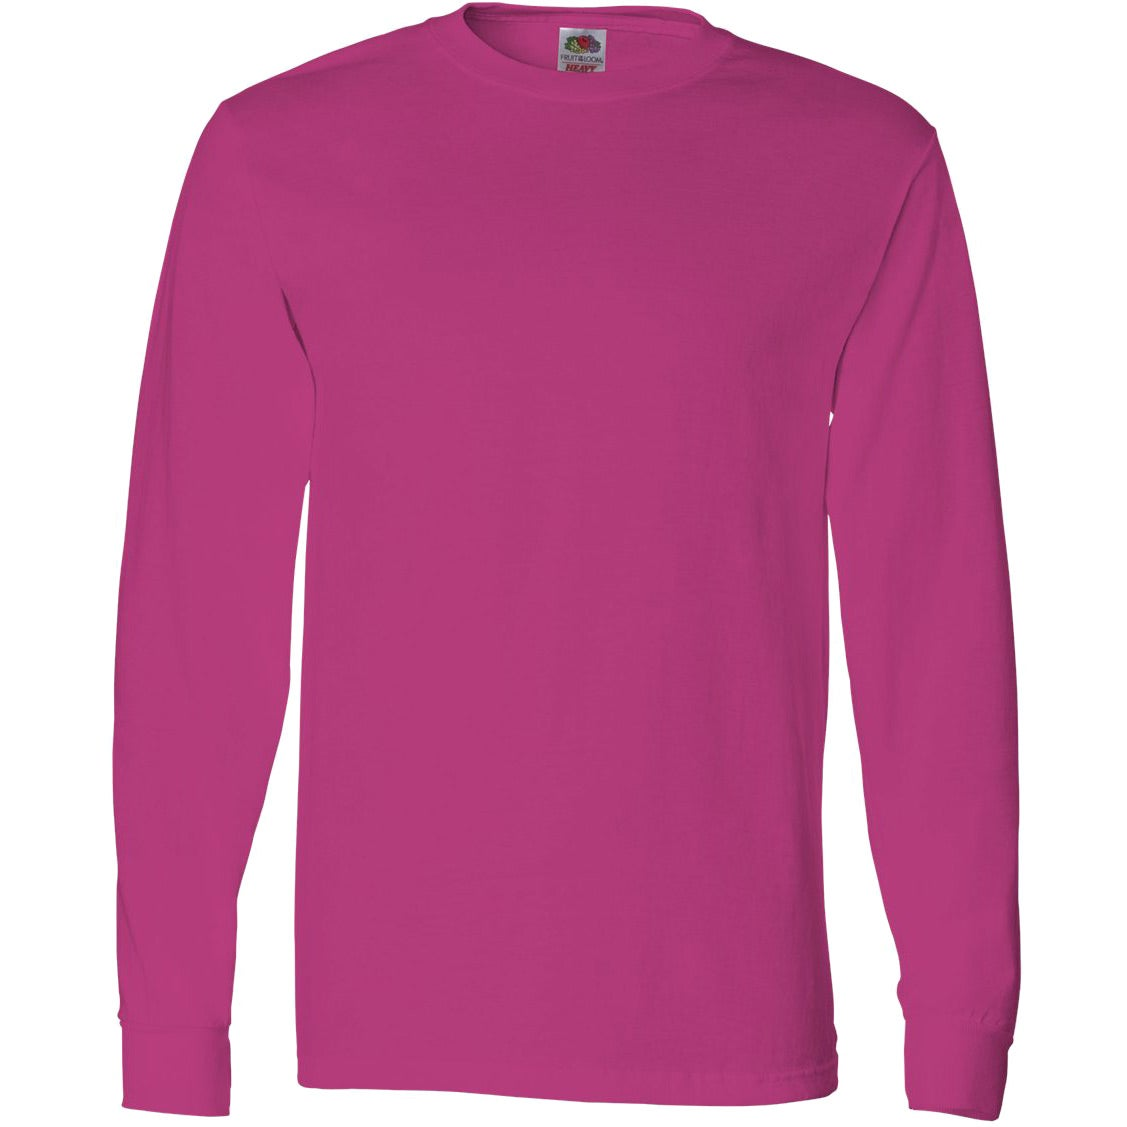 Fruit Of The Loom Long Sleeve Cotton T Shirt Colors